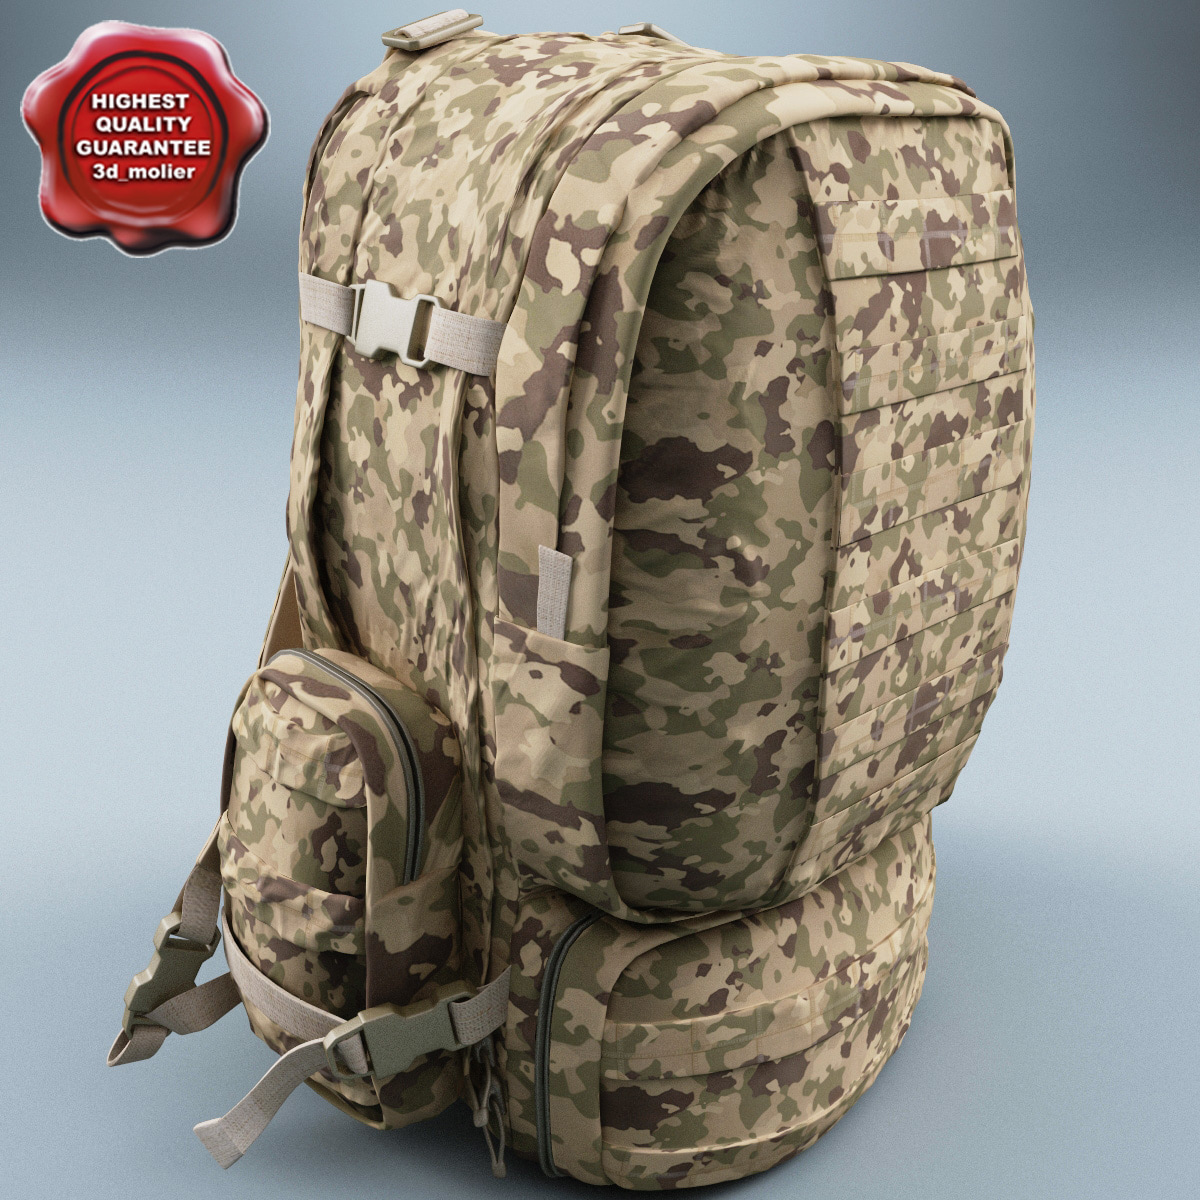 Military_Backpack_00.jpg